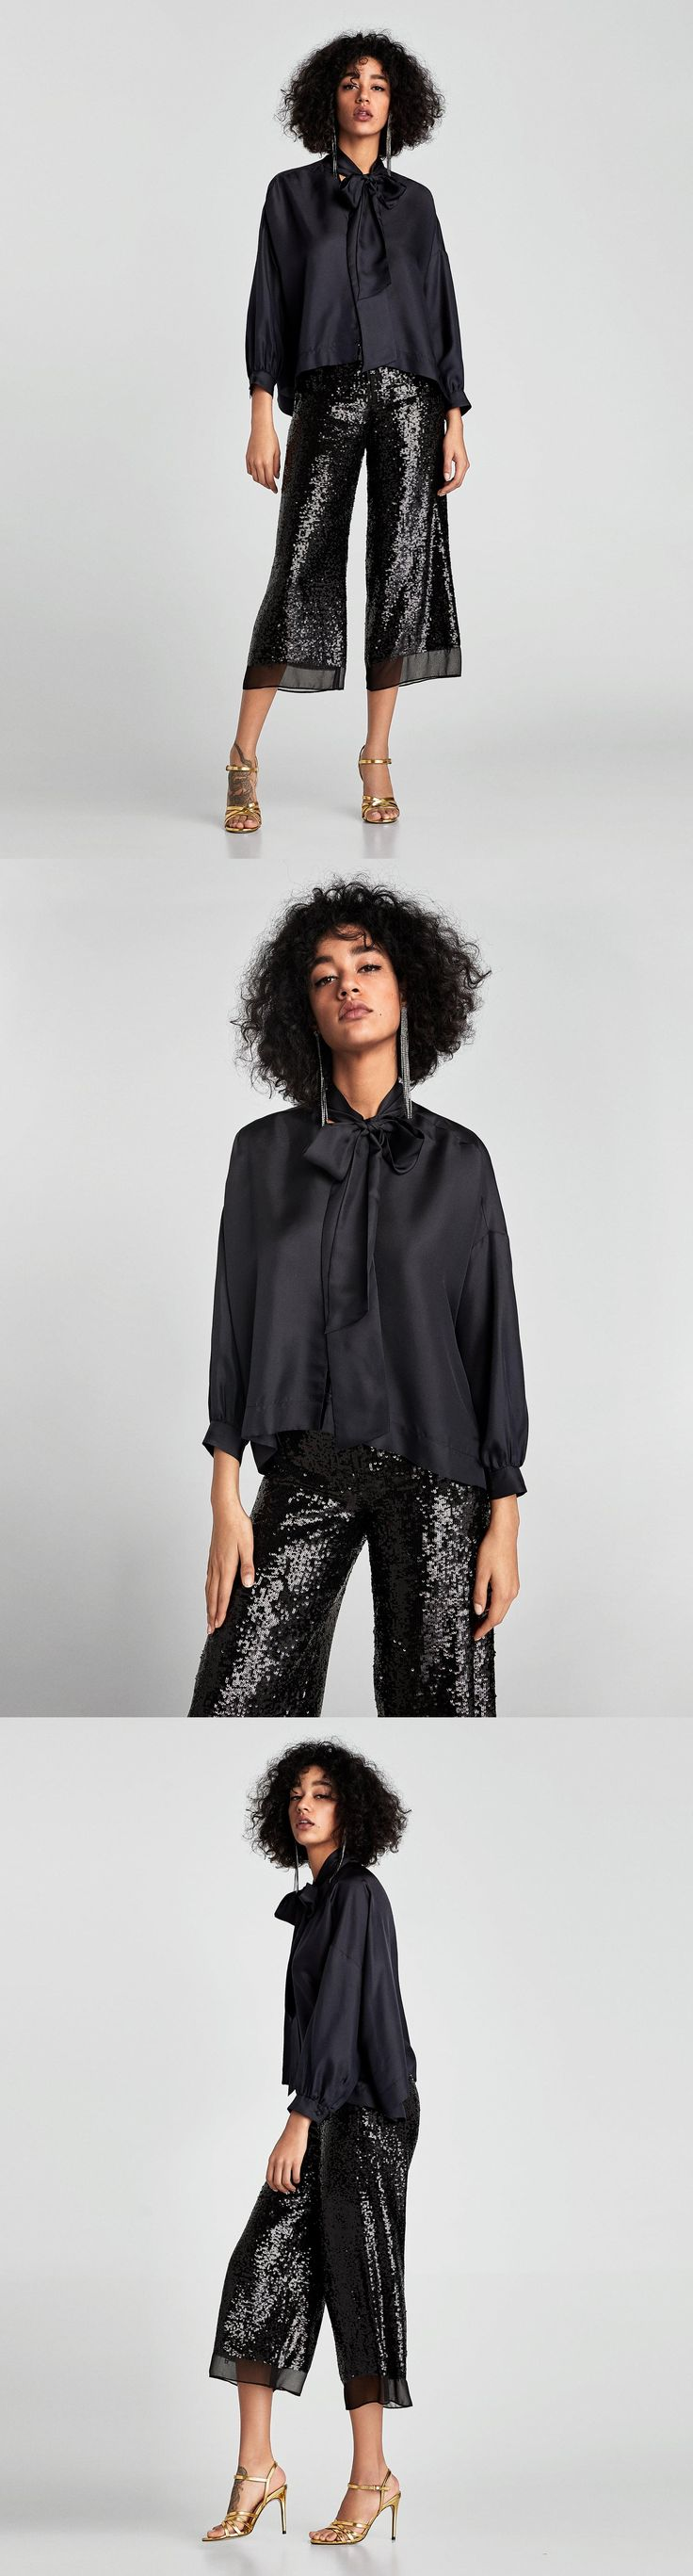 Oversized Shirt With Bow // 119.00 USD // Zara // High collar shirt with a tied bow and V-neck detail in the front. Features long sleeves, gathered cuffs, side vents and lined buttons in the front. HEIGHT OF MODEL: 178 CM / 5′ 10″